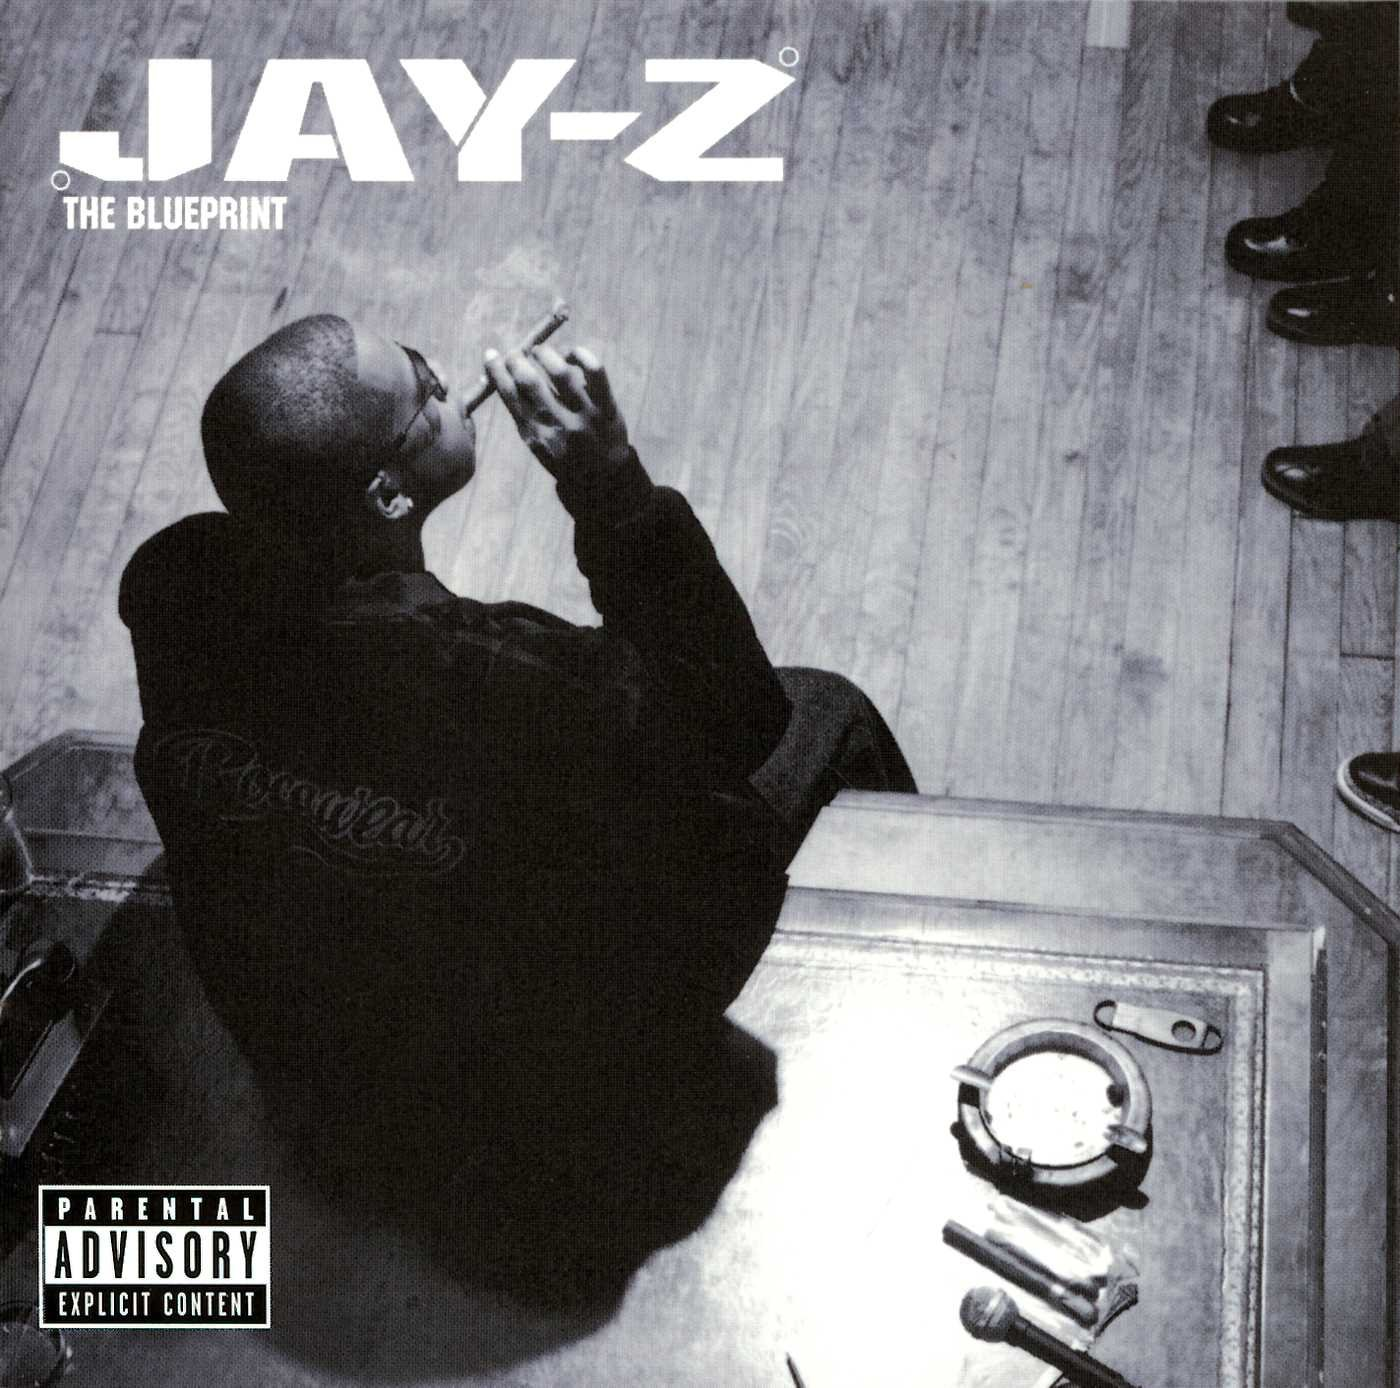 jay z the blueprint Consequence of Sounds Top 100 Albums Ever